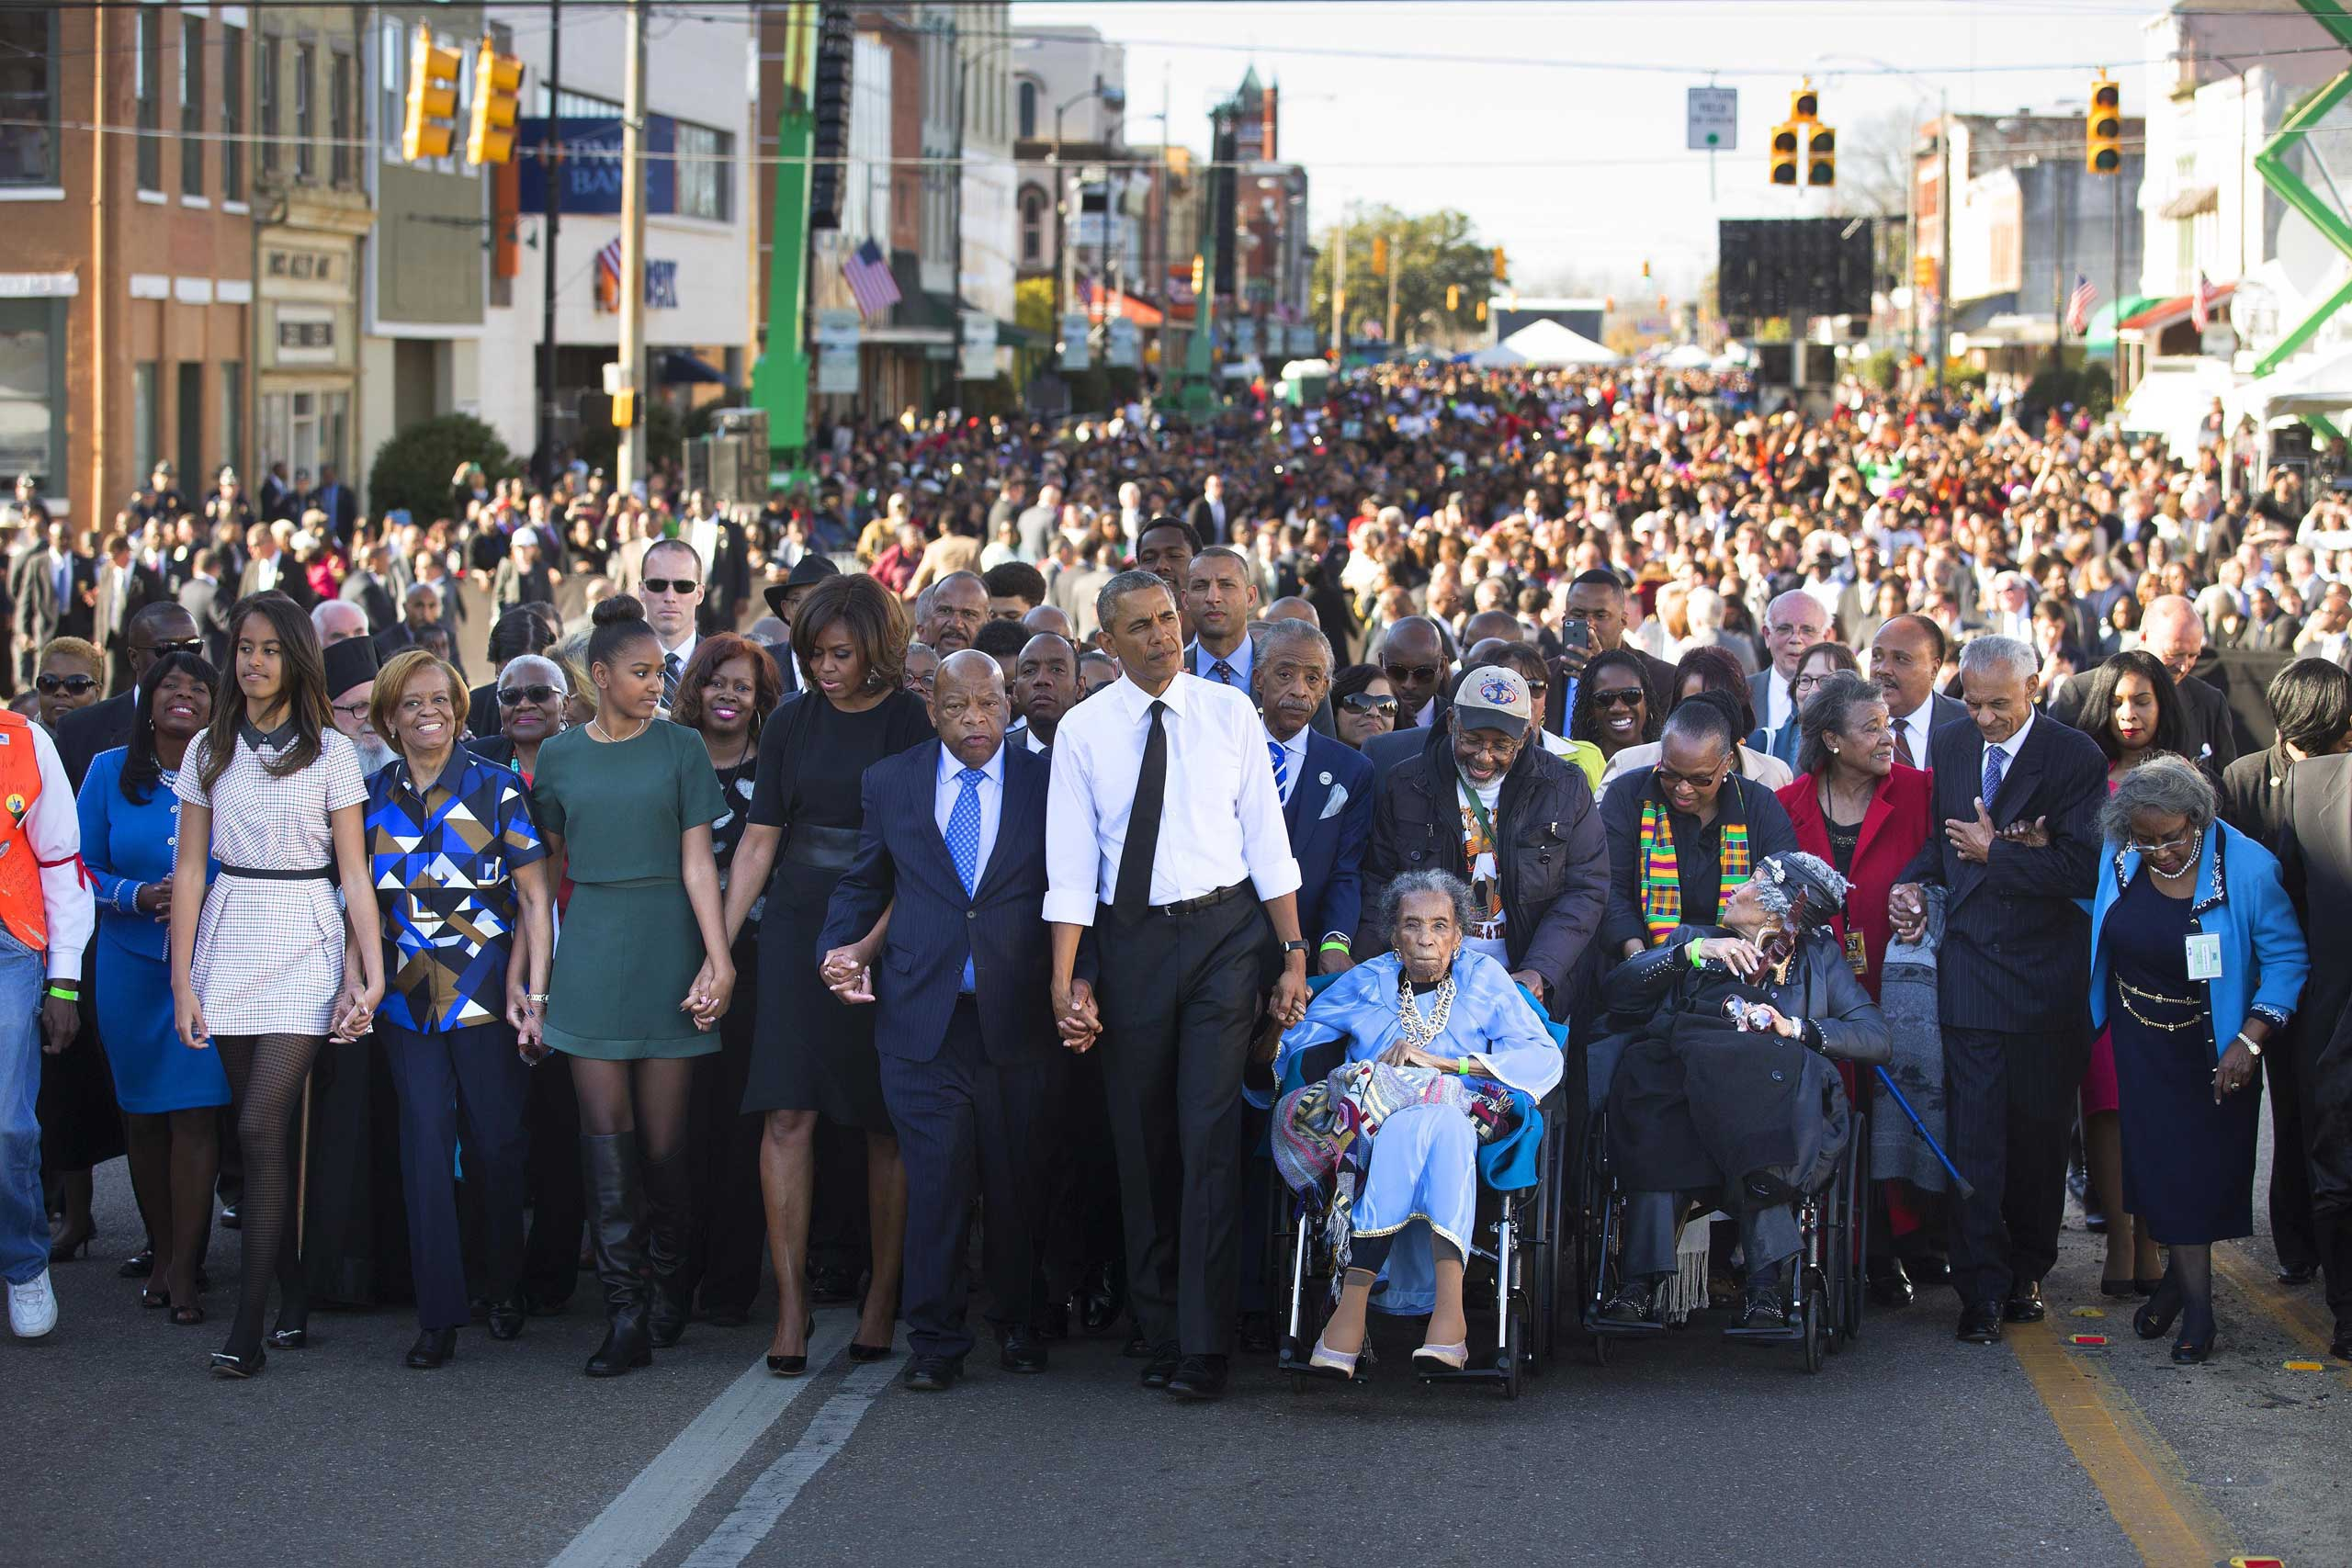 President Barack Obama, Amelia Boynton, right, Rep. John Lewis (D-Ga.) and the first family lead a march toward the Edmund Pettus bridge, 50 years to the day after Bloody Sunday in Selma, Ala. In an address, Obama rejected the notion that race relations have not improved in the years since—as well as the notion that racism has been defeated. March 7, 2015.